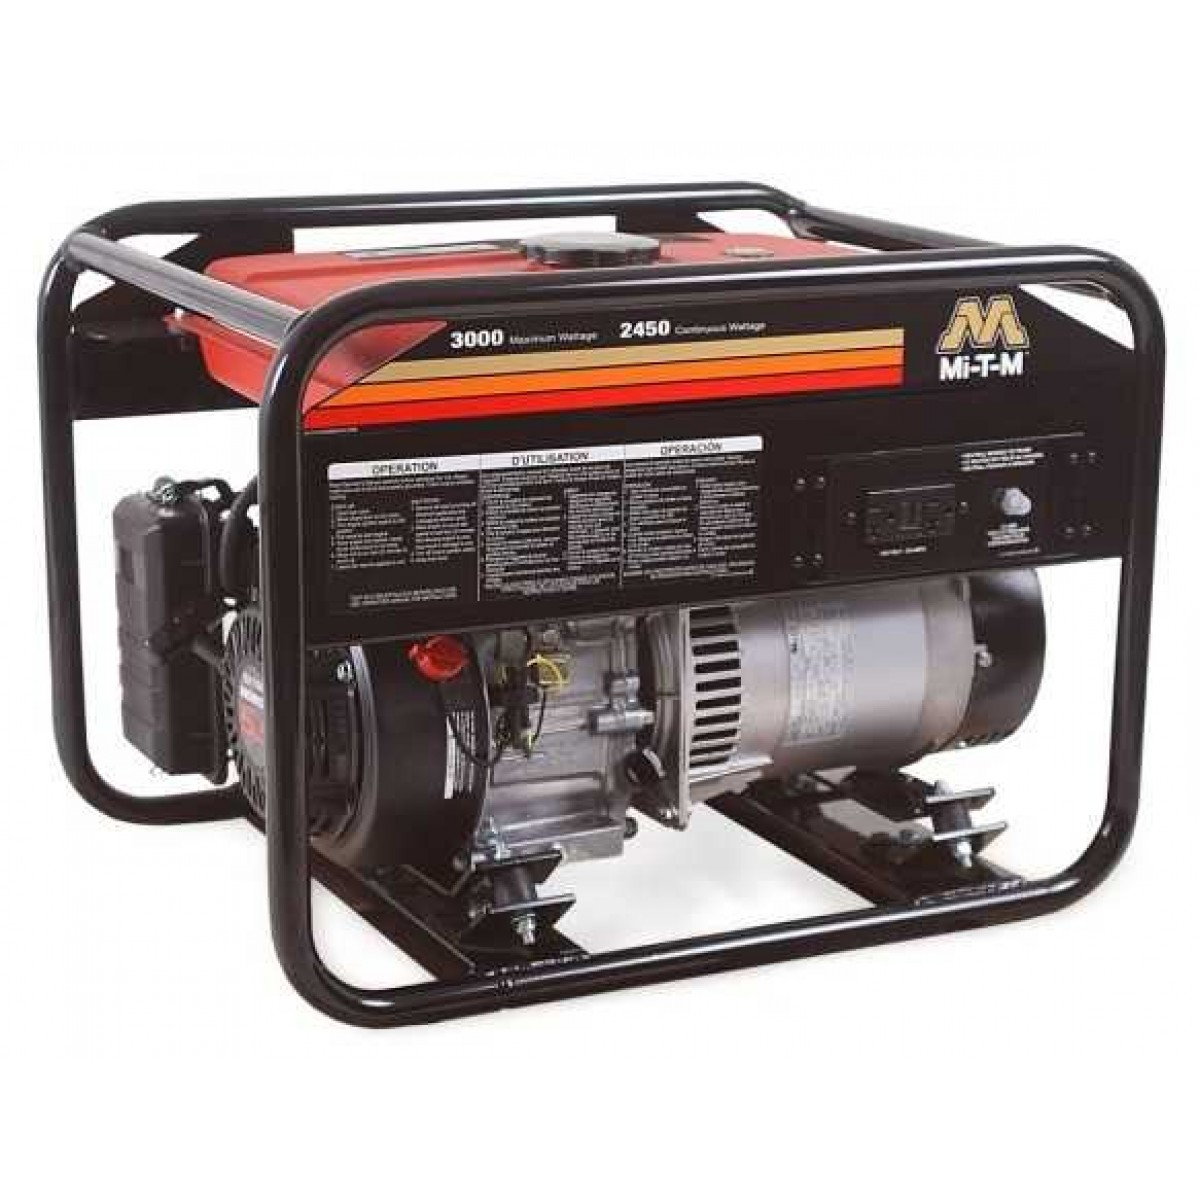 Portable Air Compressors, Generators And Power Inverters